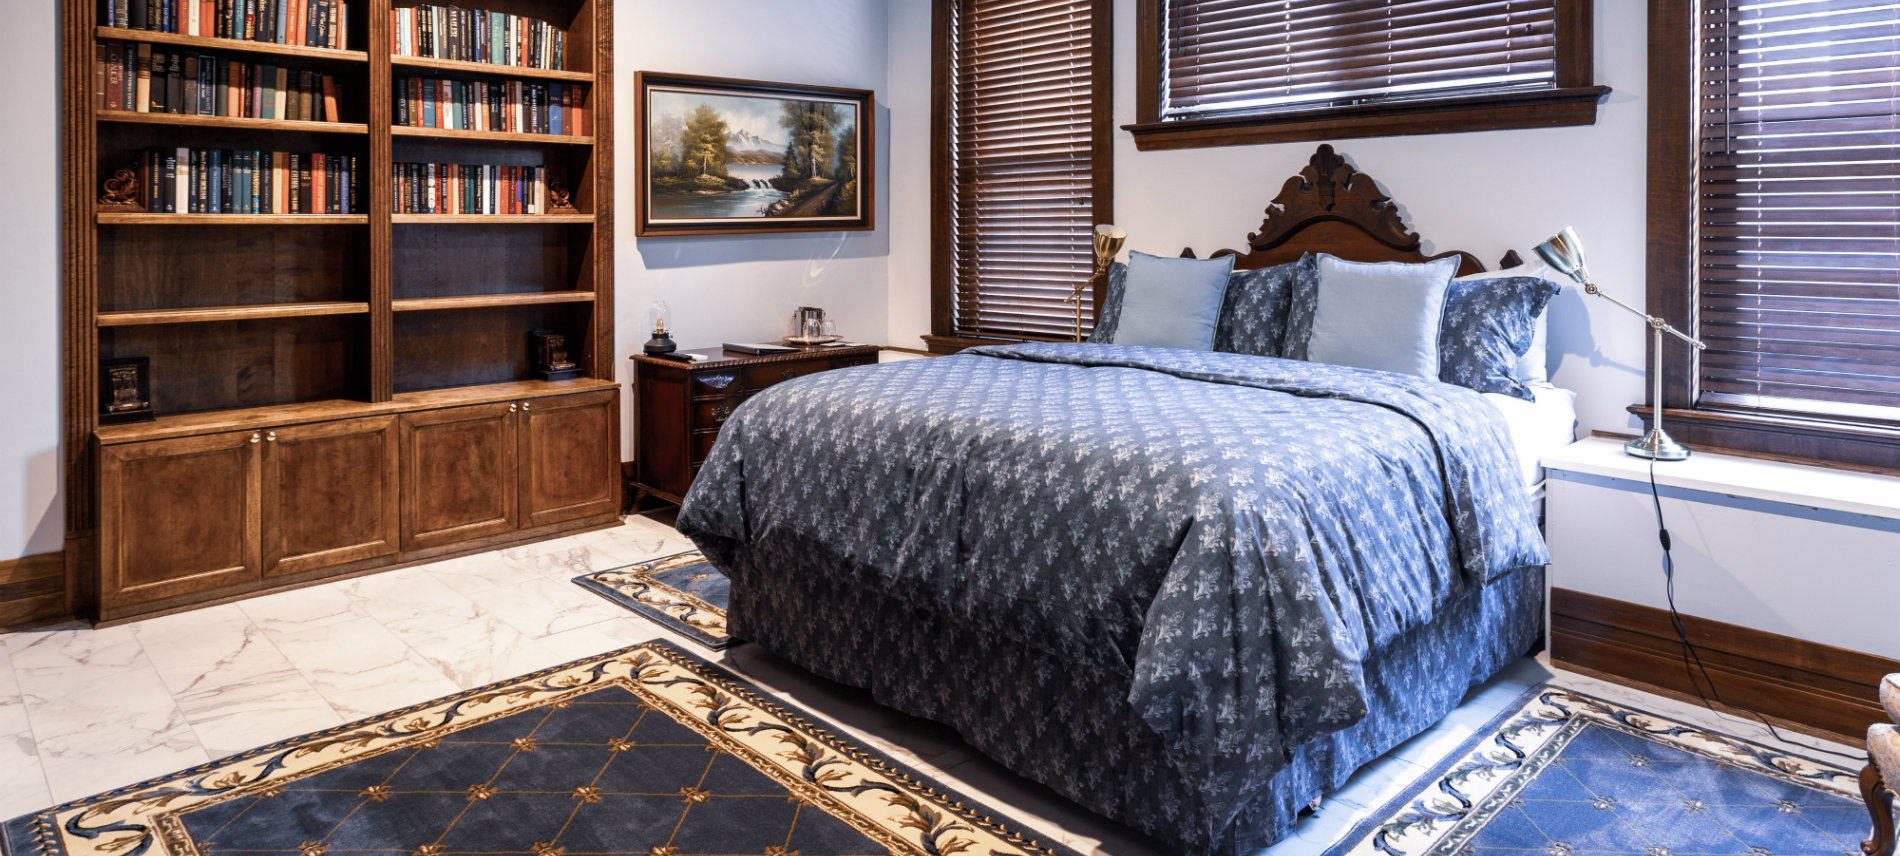 California King bed with fleur de lys comforter, work station, book cases